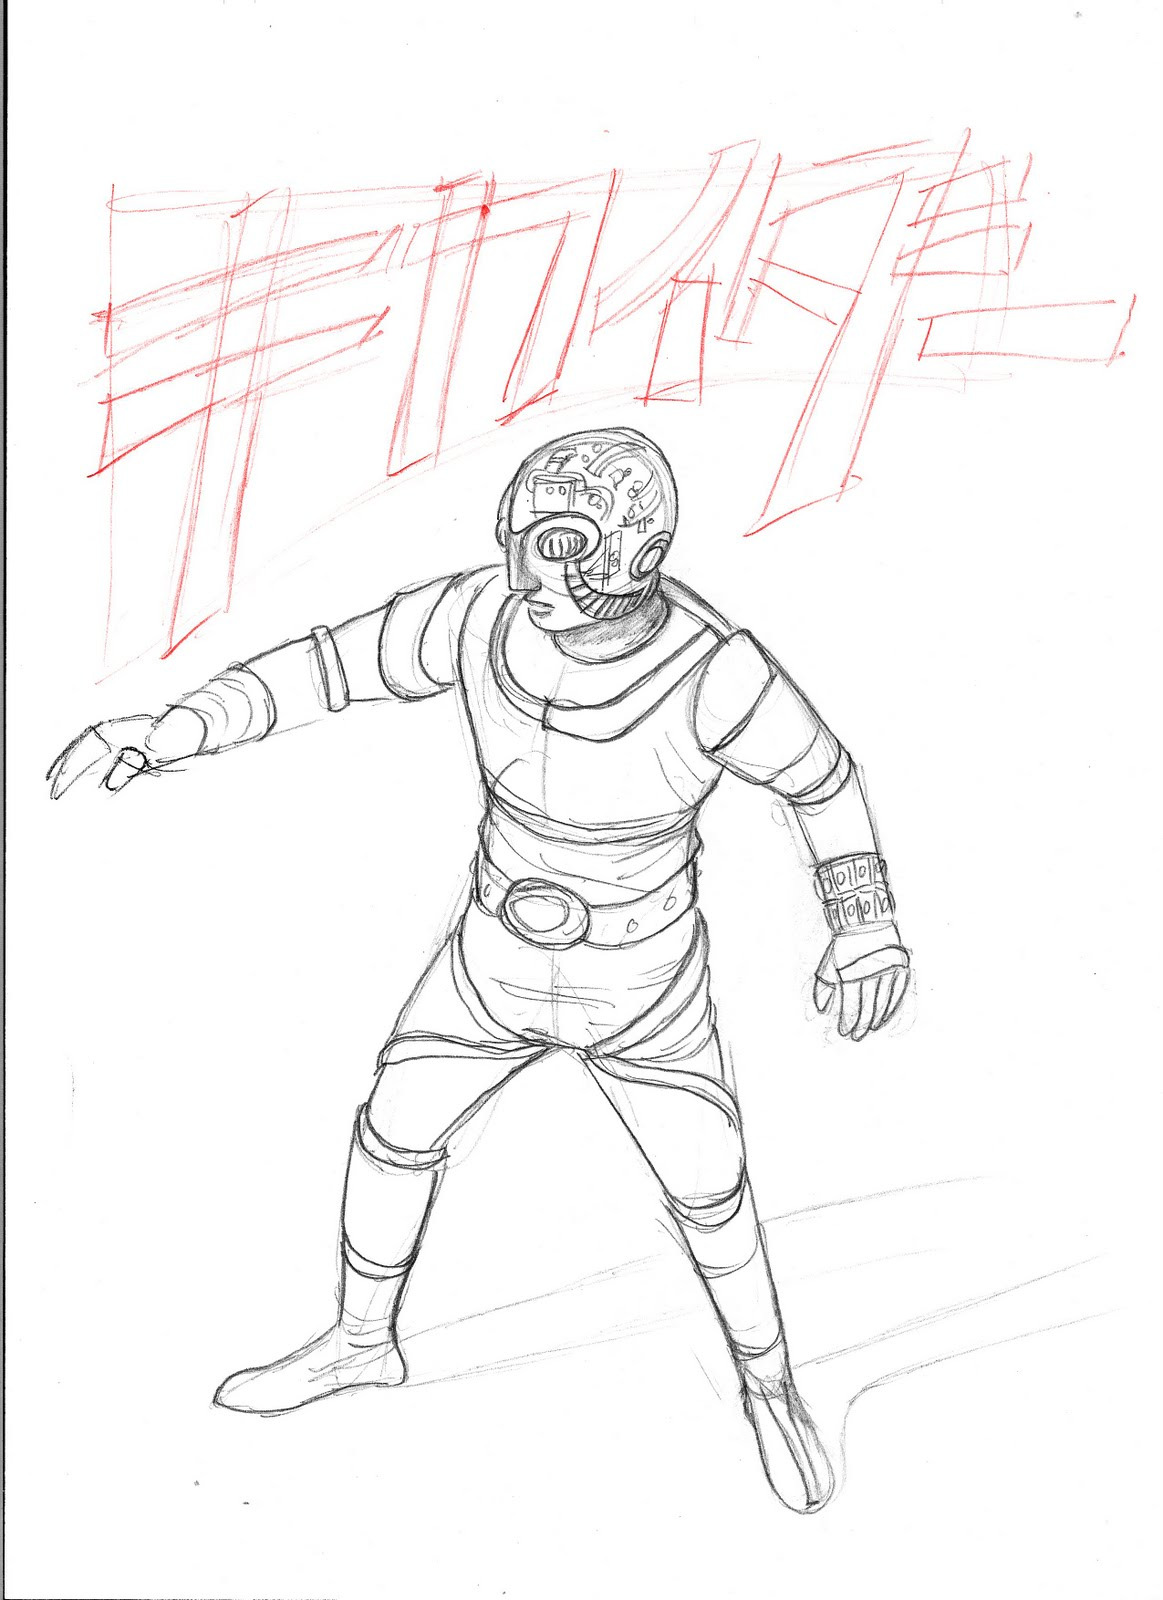 Free coloring pages of superstars